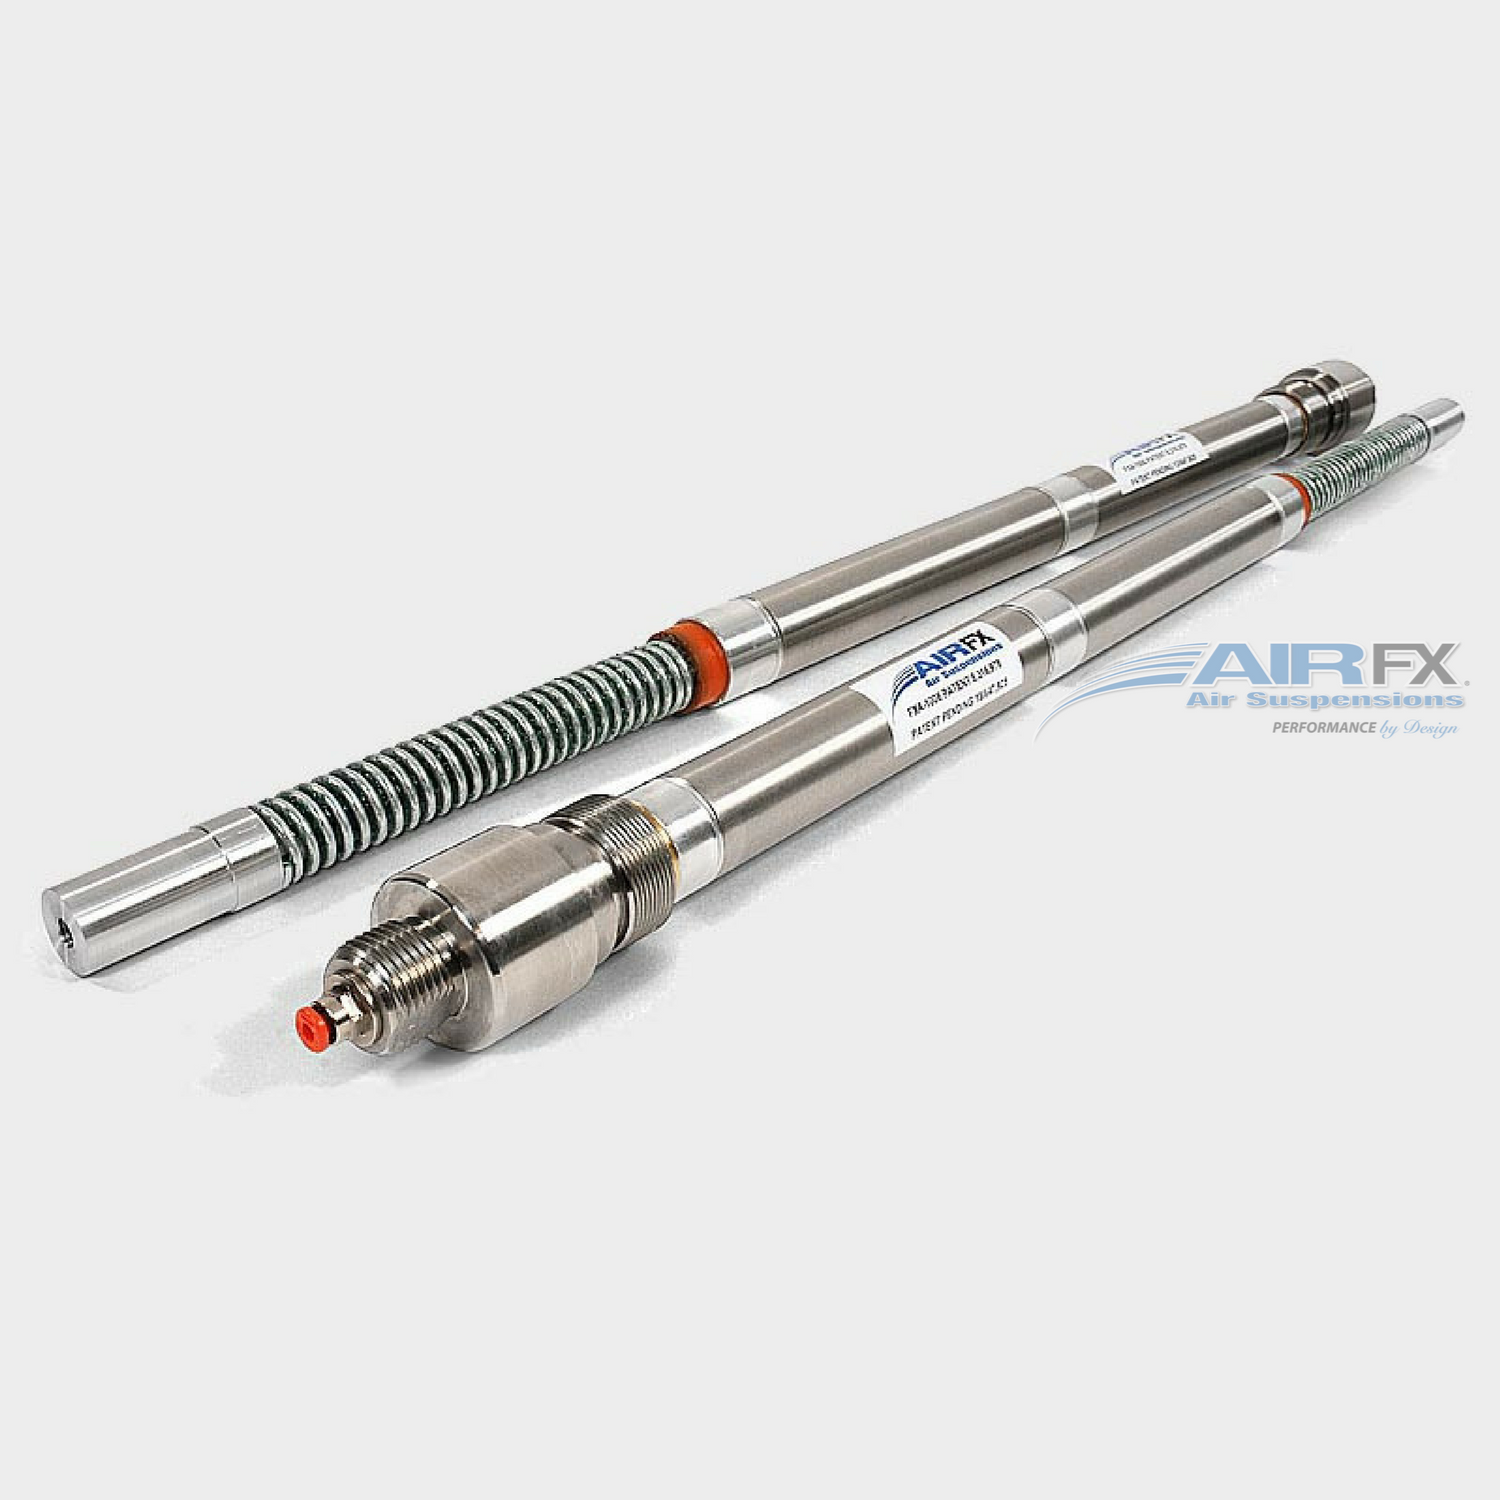 41mm Front Cartridge Pair with HHI Extensions for your 26 inch front wheel long neck